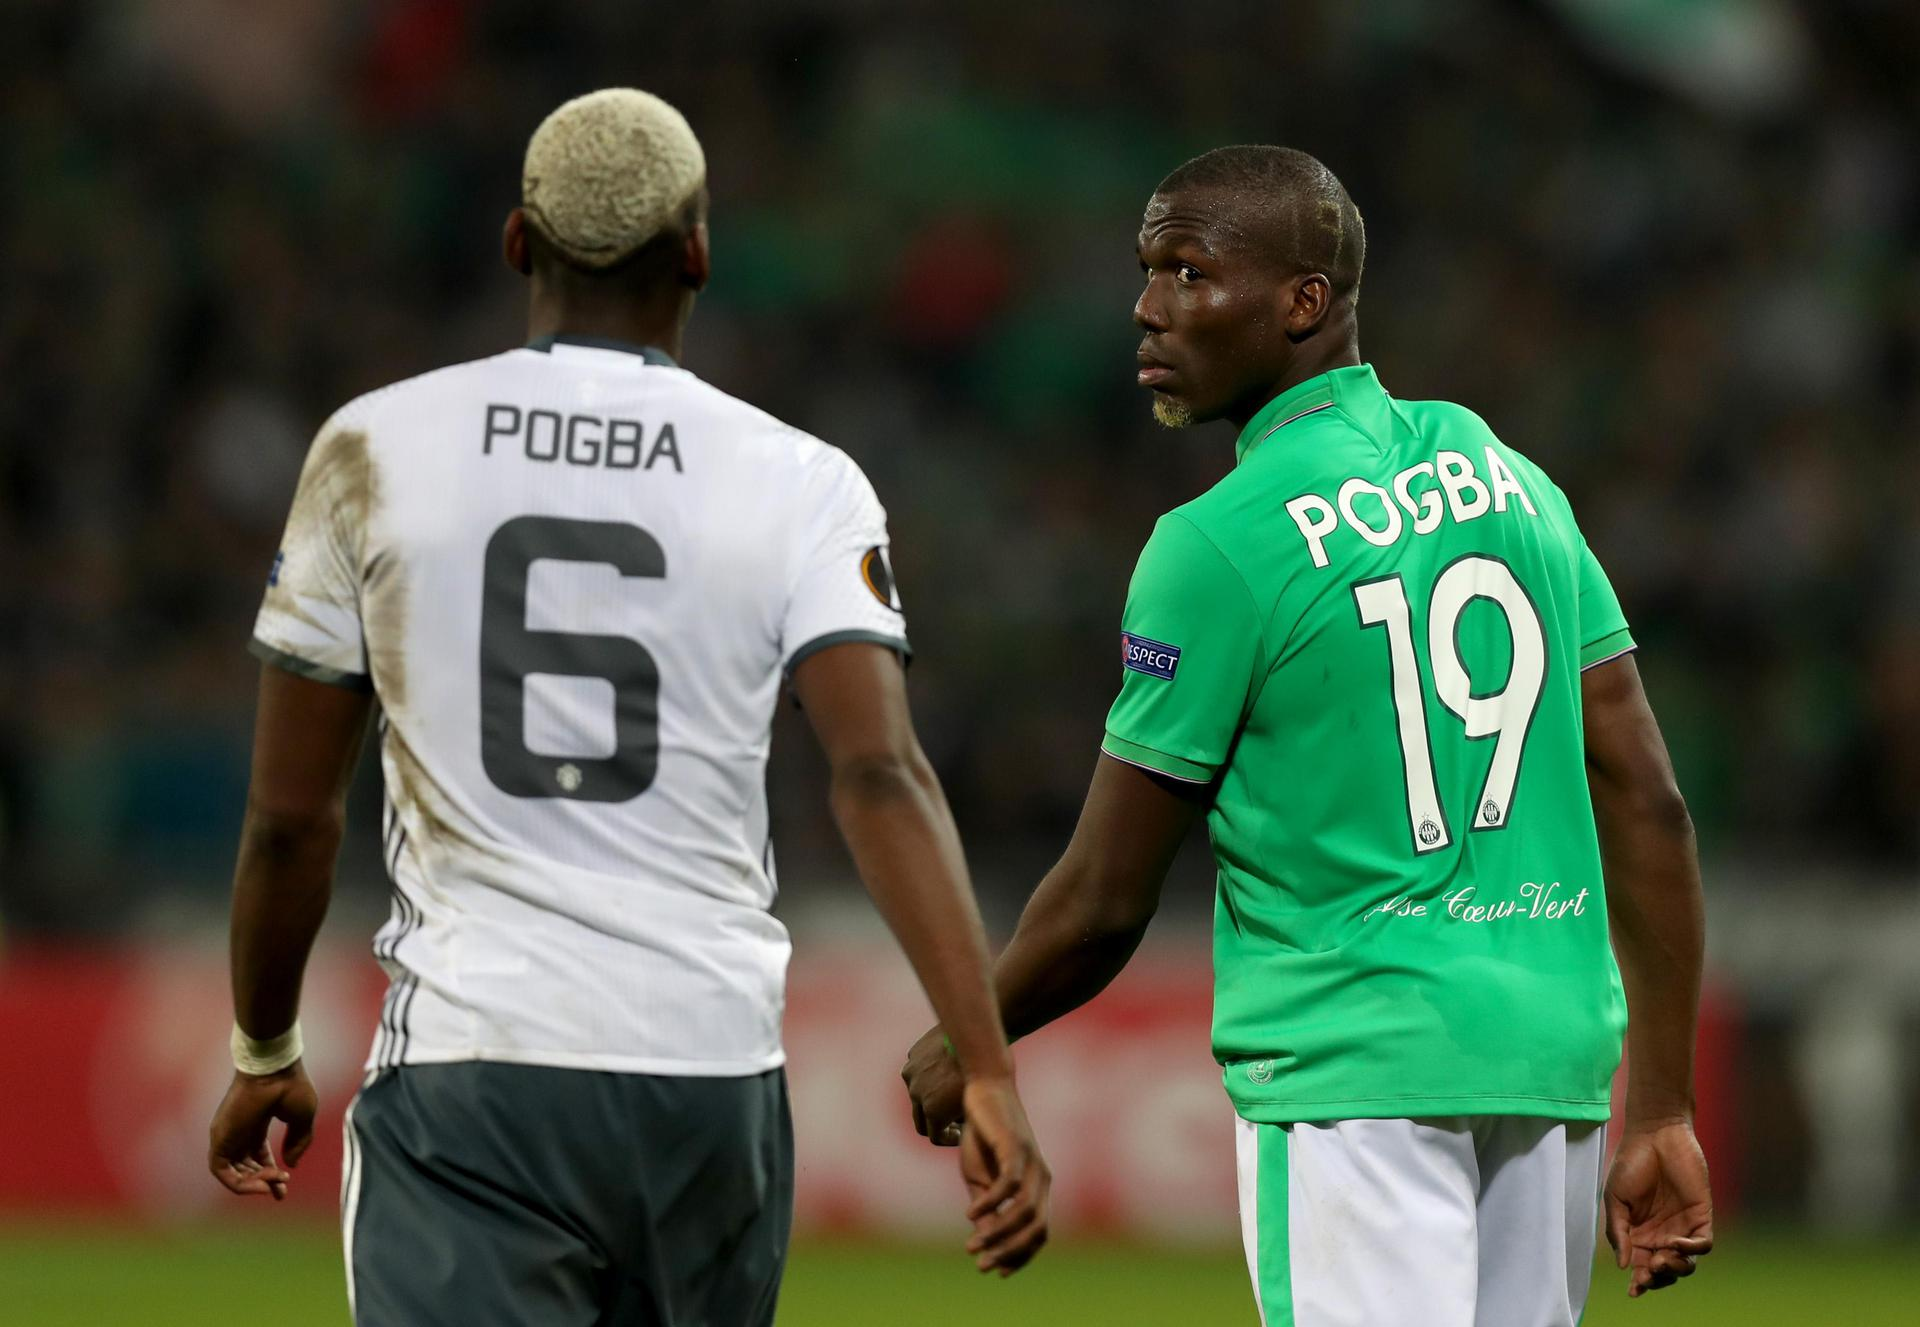 Paul Pogba and Florentin Pogba in opposition in the Europa League.